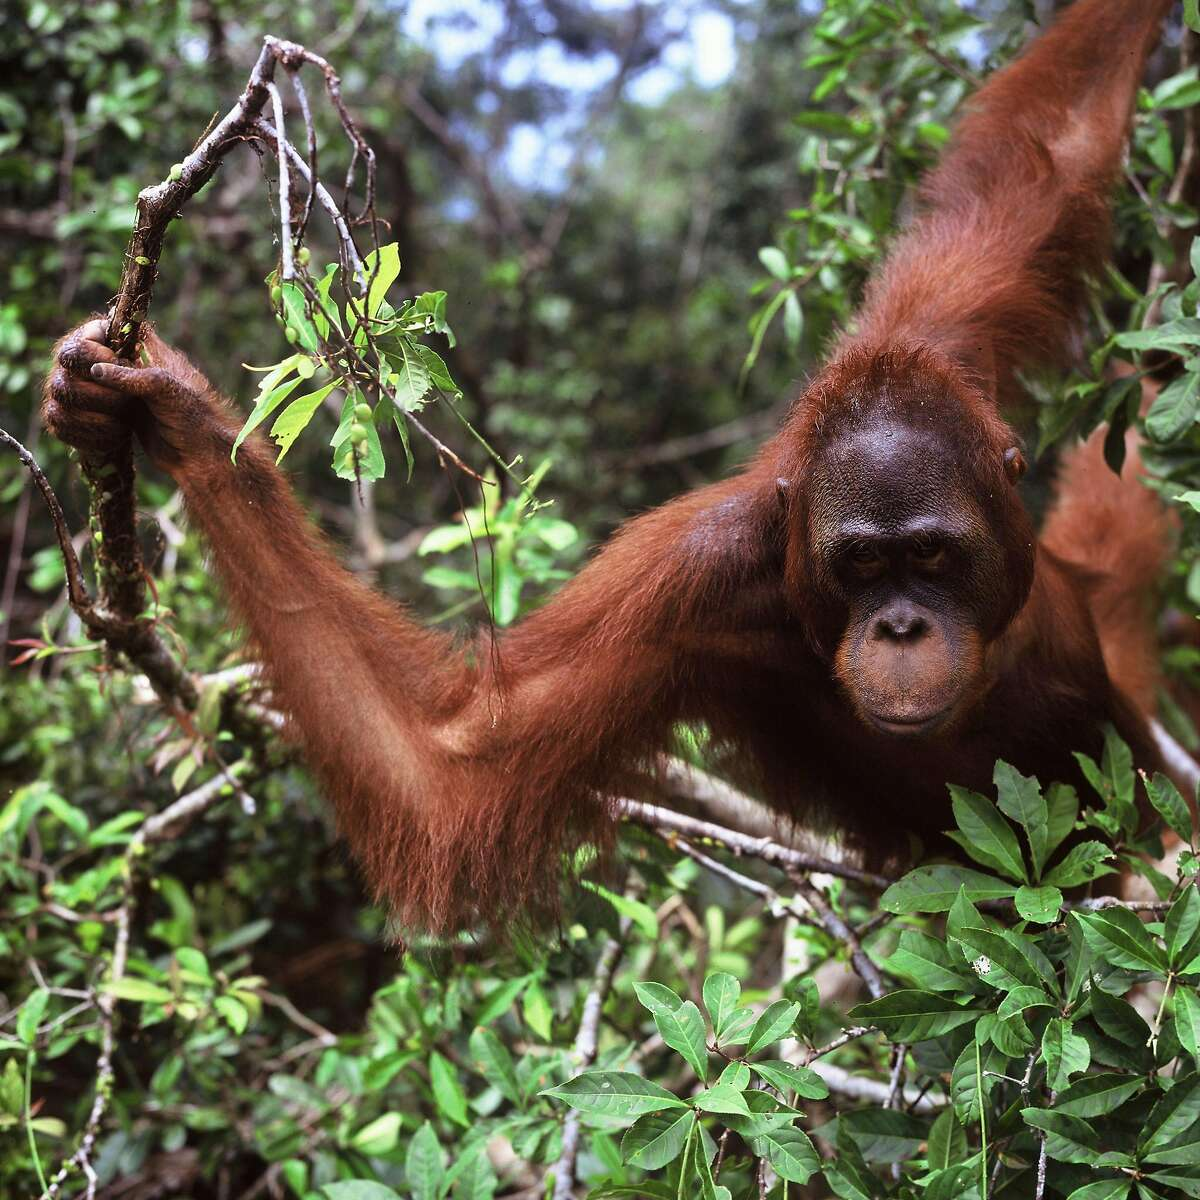 A sub adult male orangutan is seen in Central Kalimantan, Borneo, Indonesia, in this file photo provided by WWF on Monday, June 11, 2007. Borneo and Sumatran orangutans have been considered endangered for years mainly because of loss of habitat.